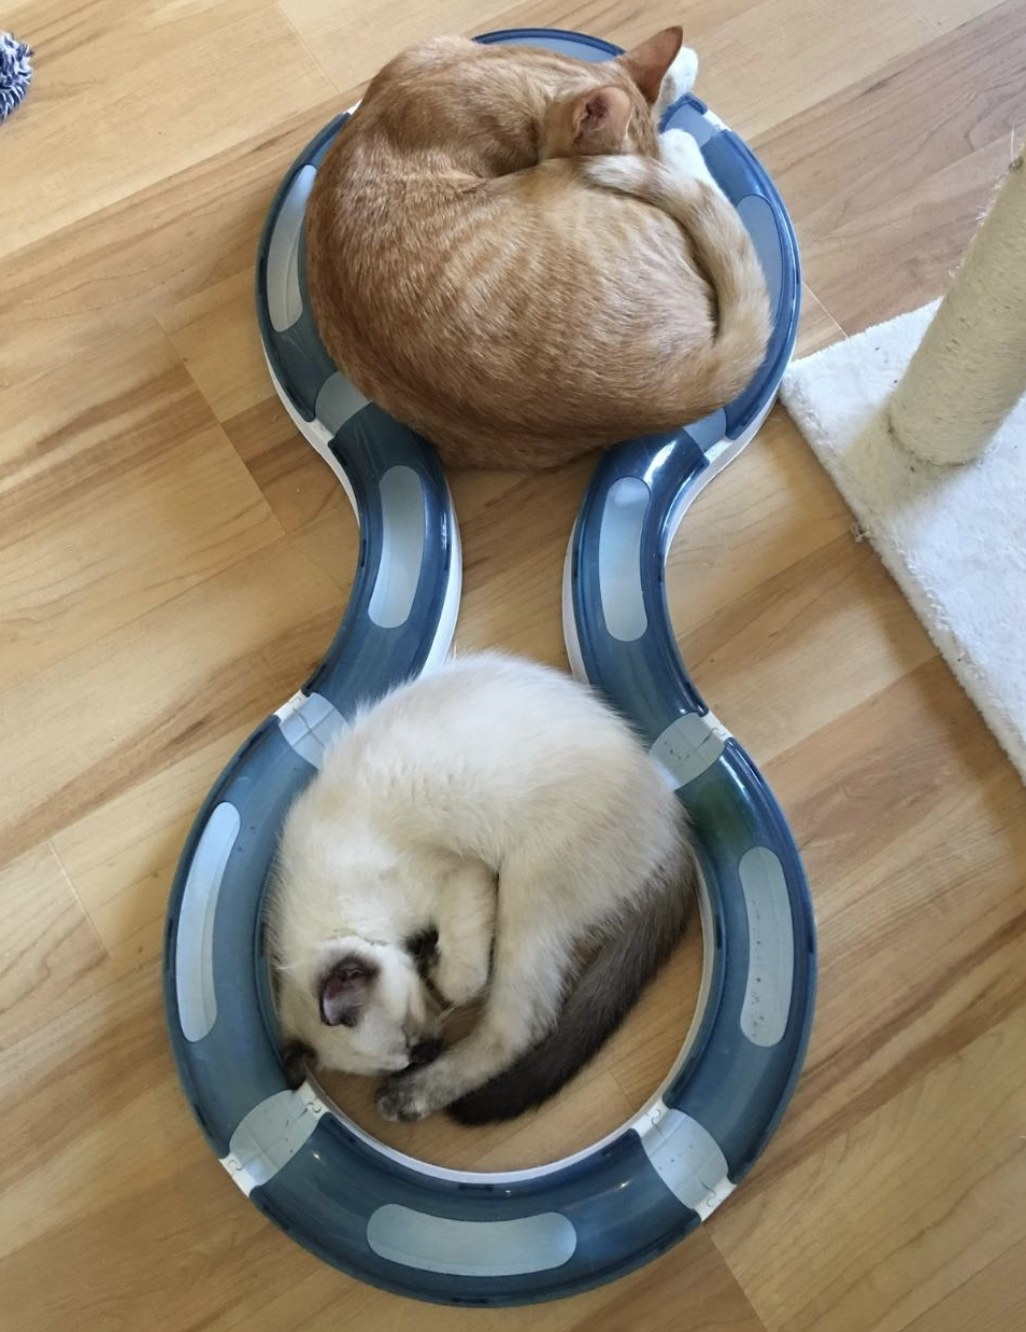 two cats lounging in a grey and white circuit toy that is in a figure eight shape